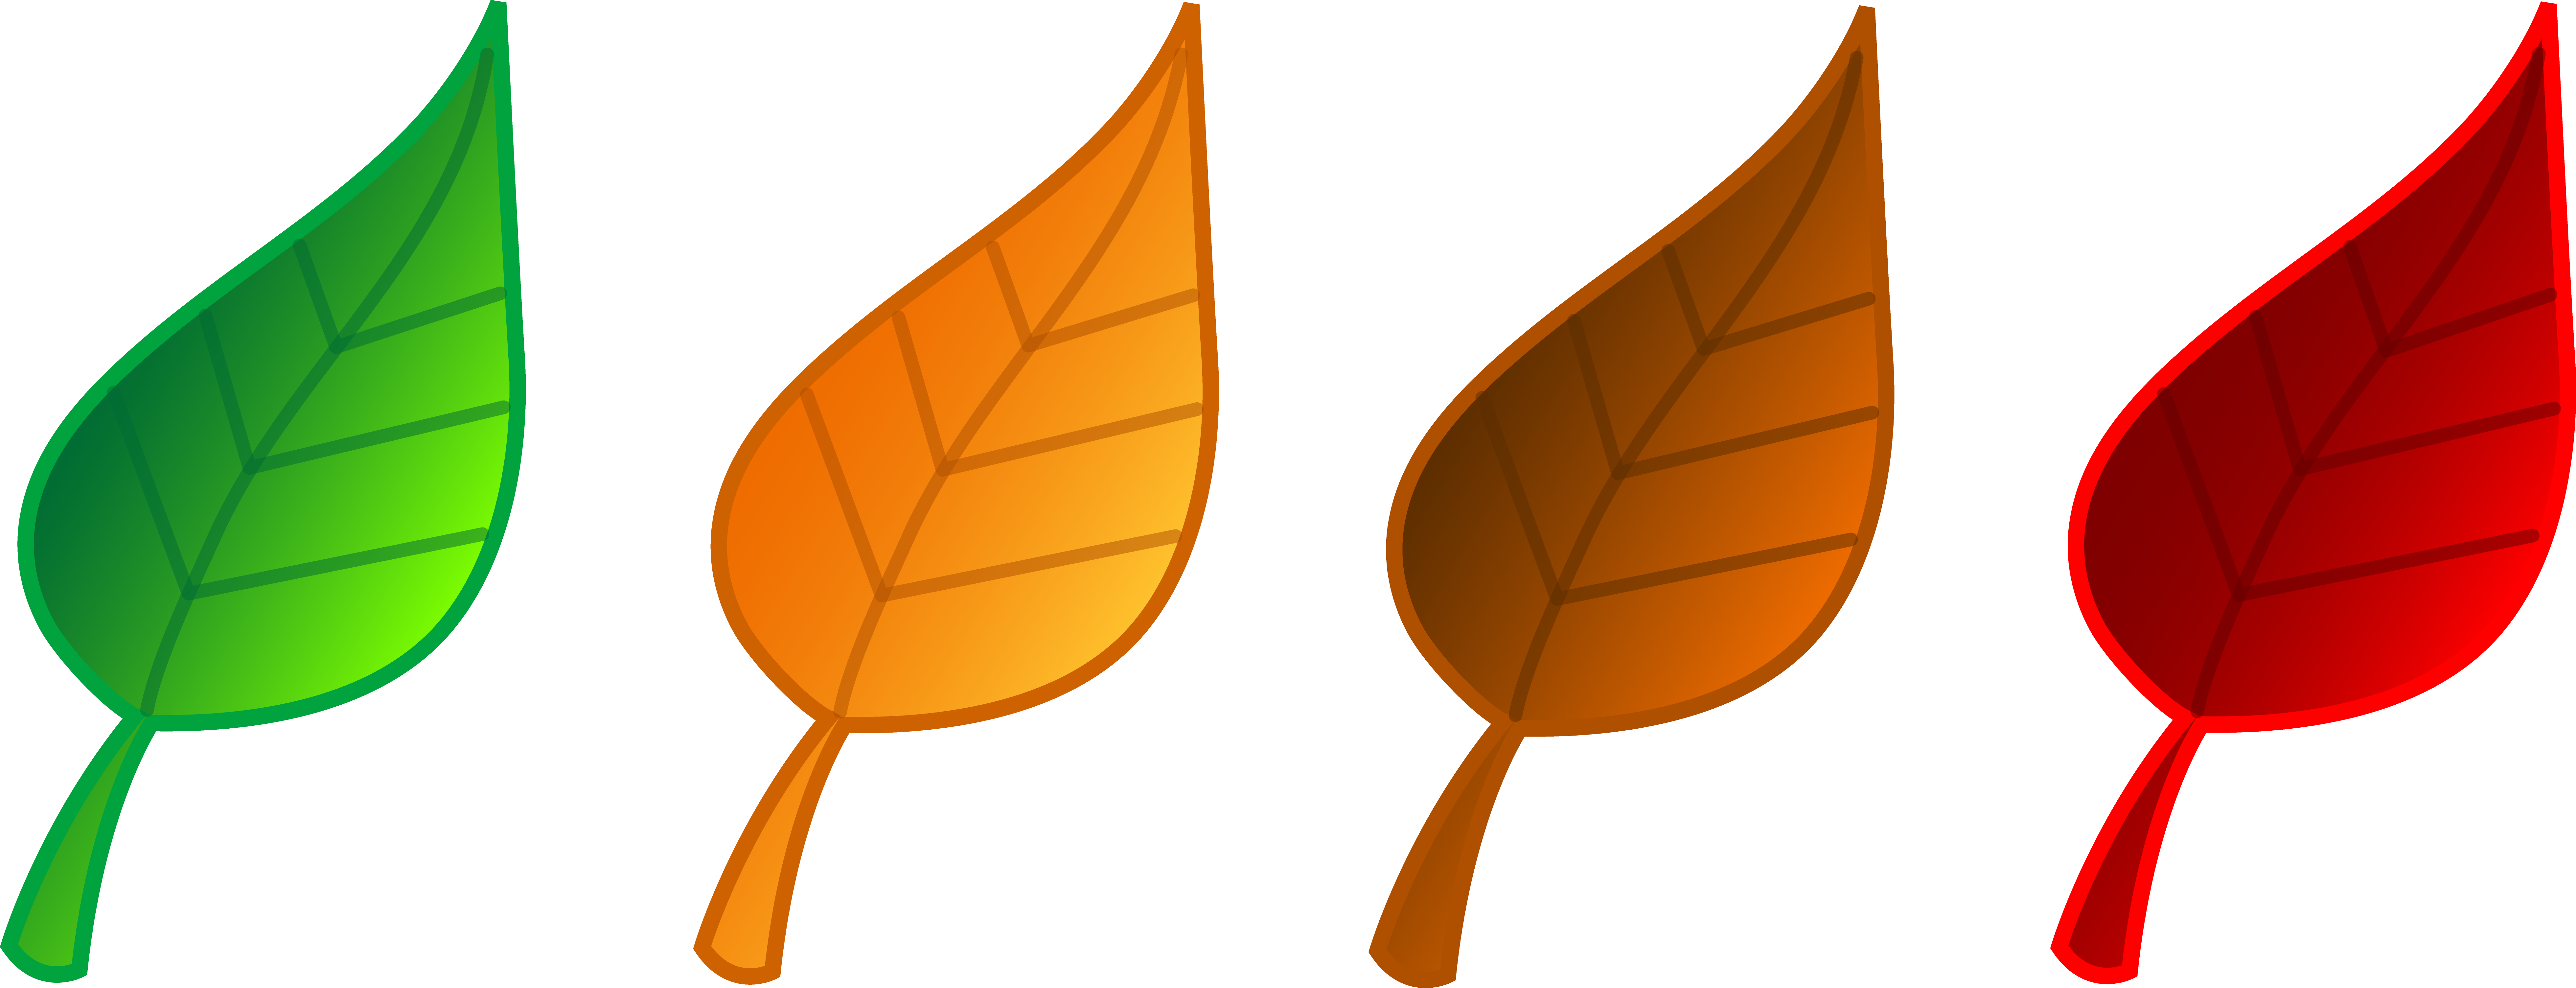 7840x3006 Best Fall Leaves Clip Art